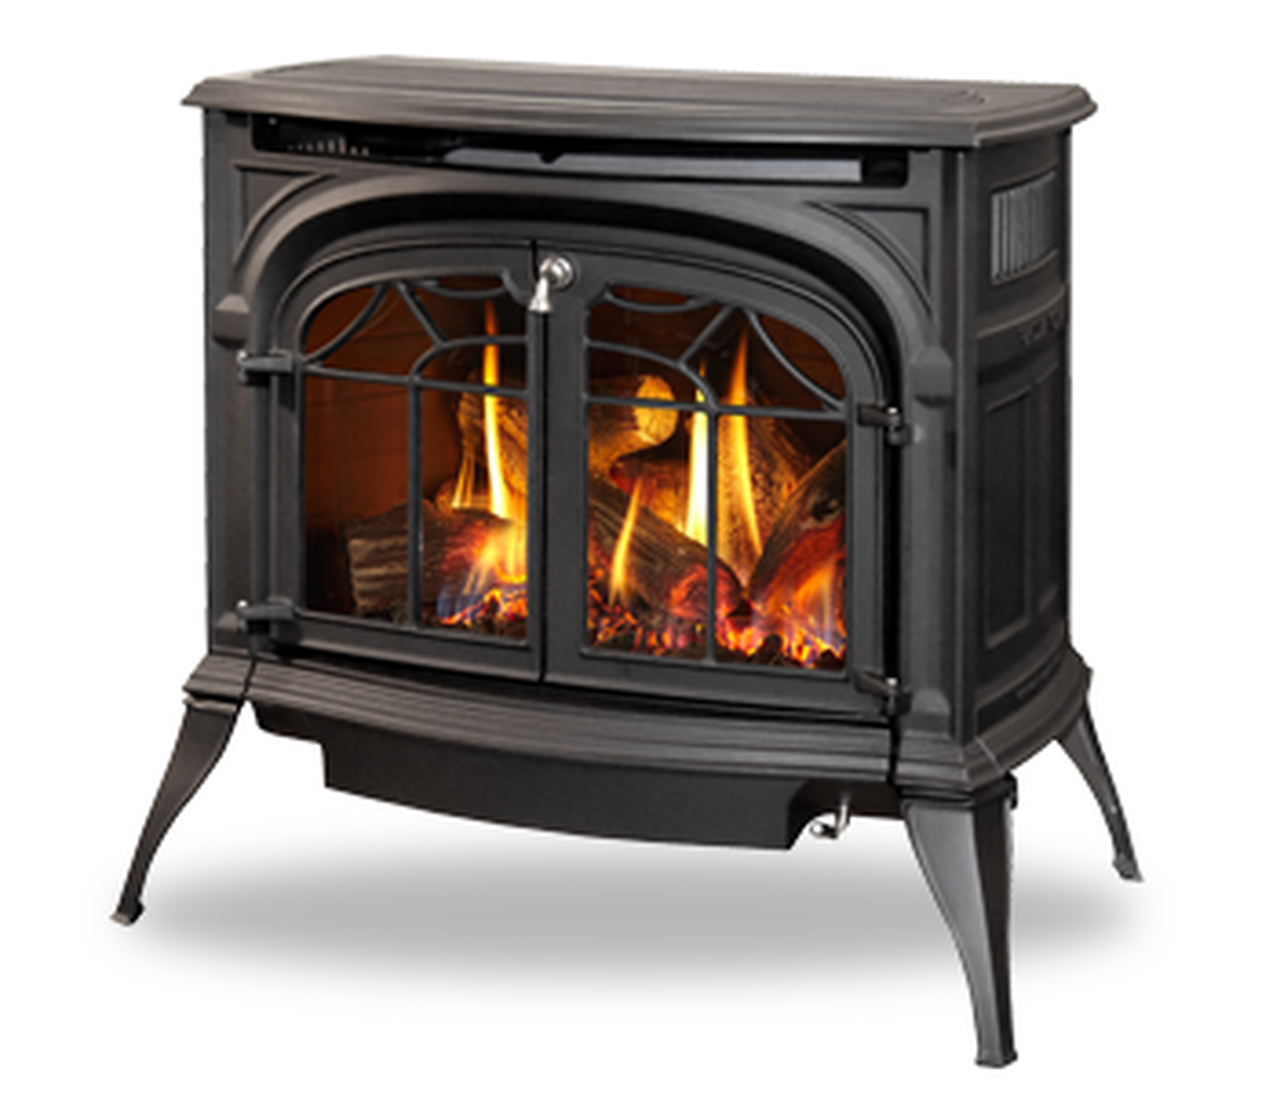 Vermont Castings Radiance Direct Vent Gas Stove Embers